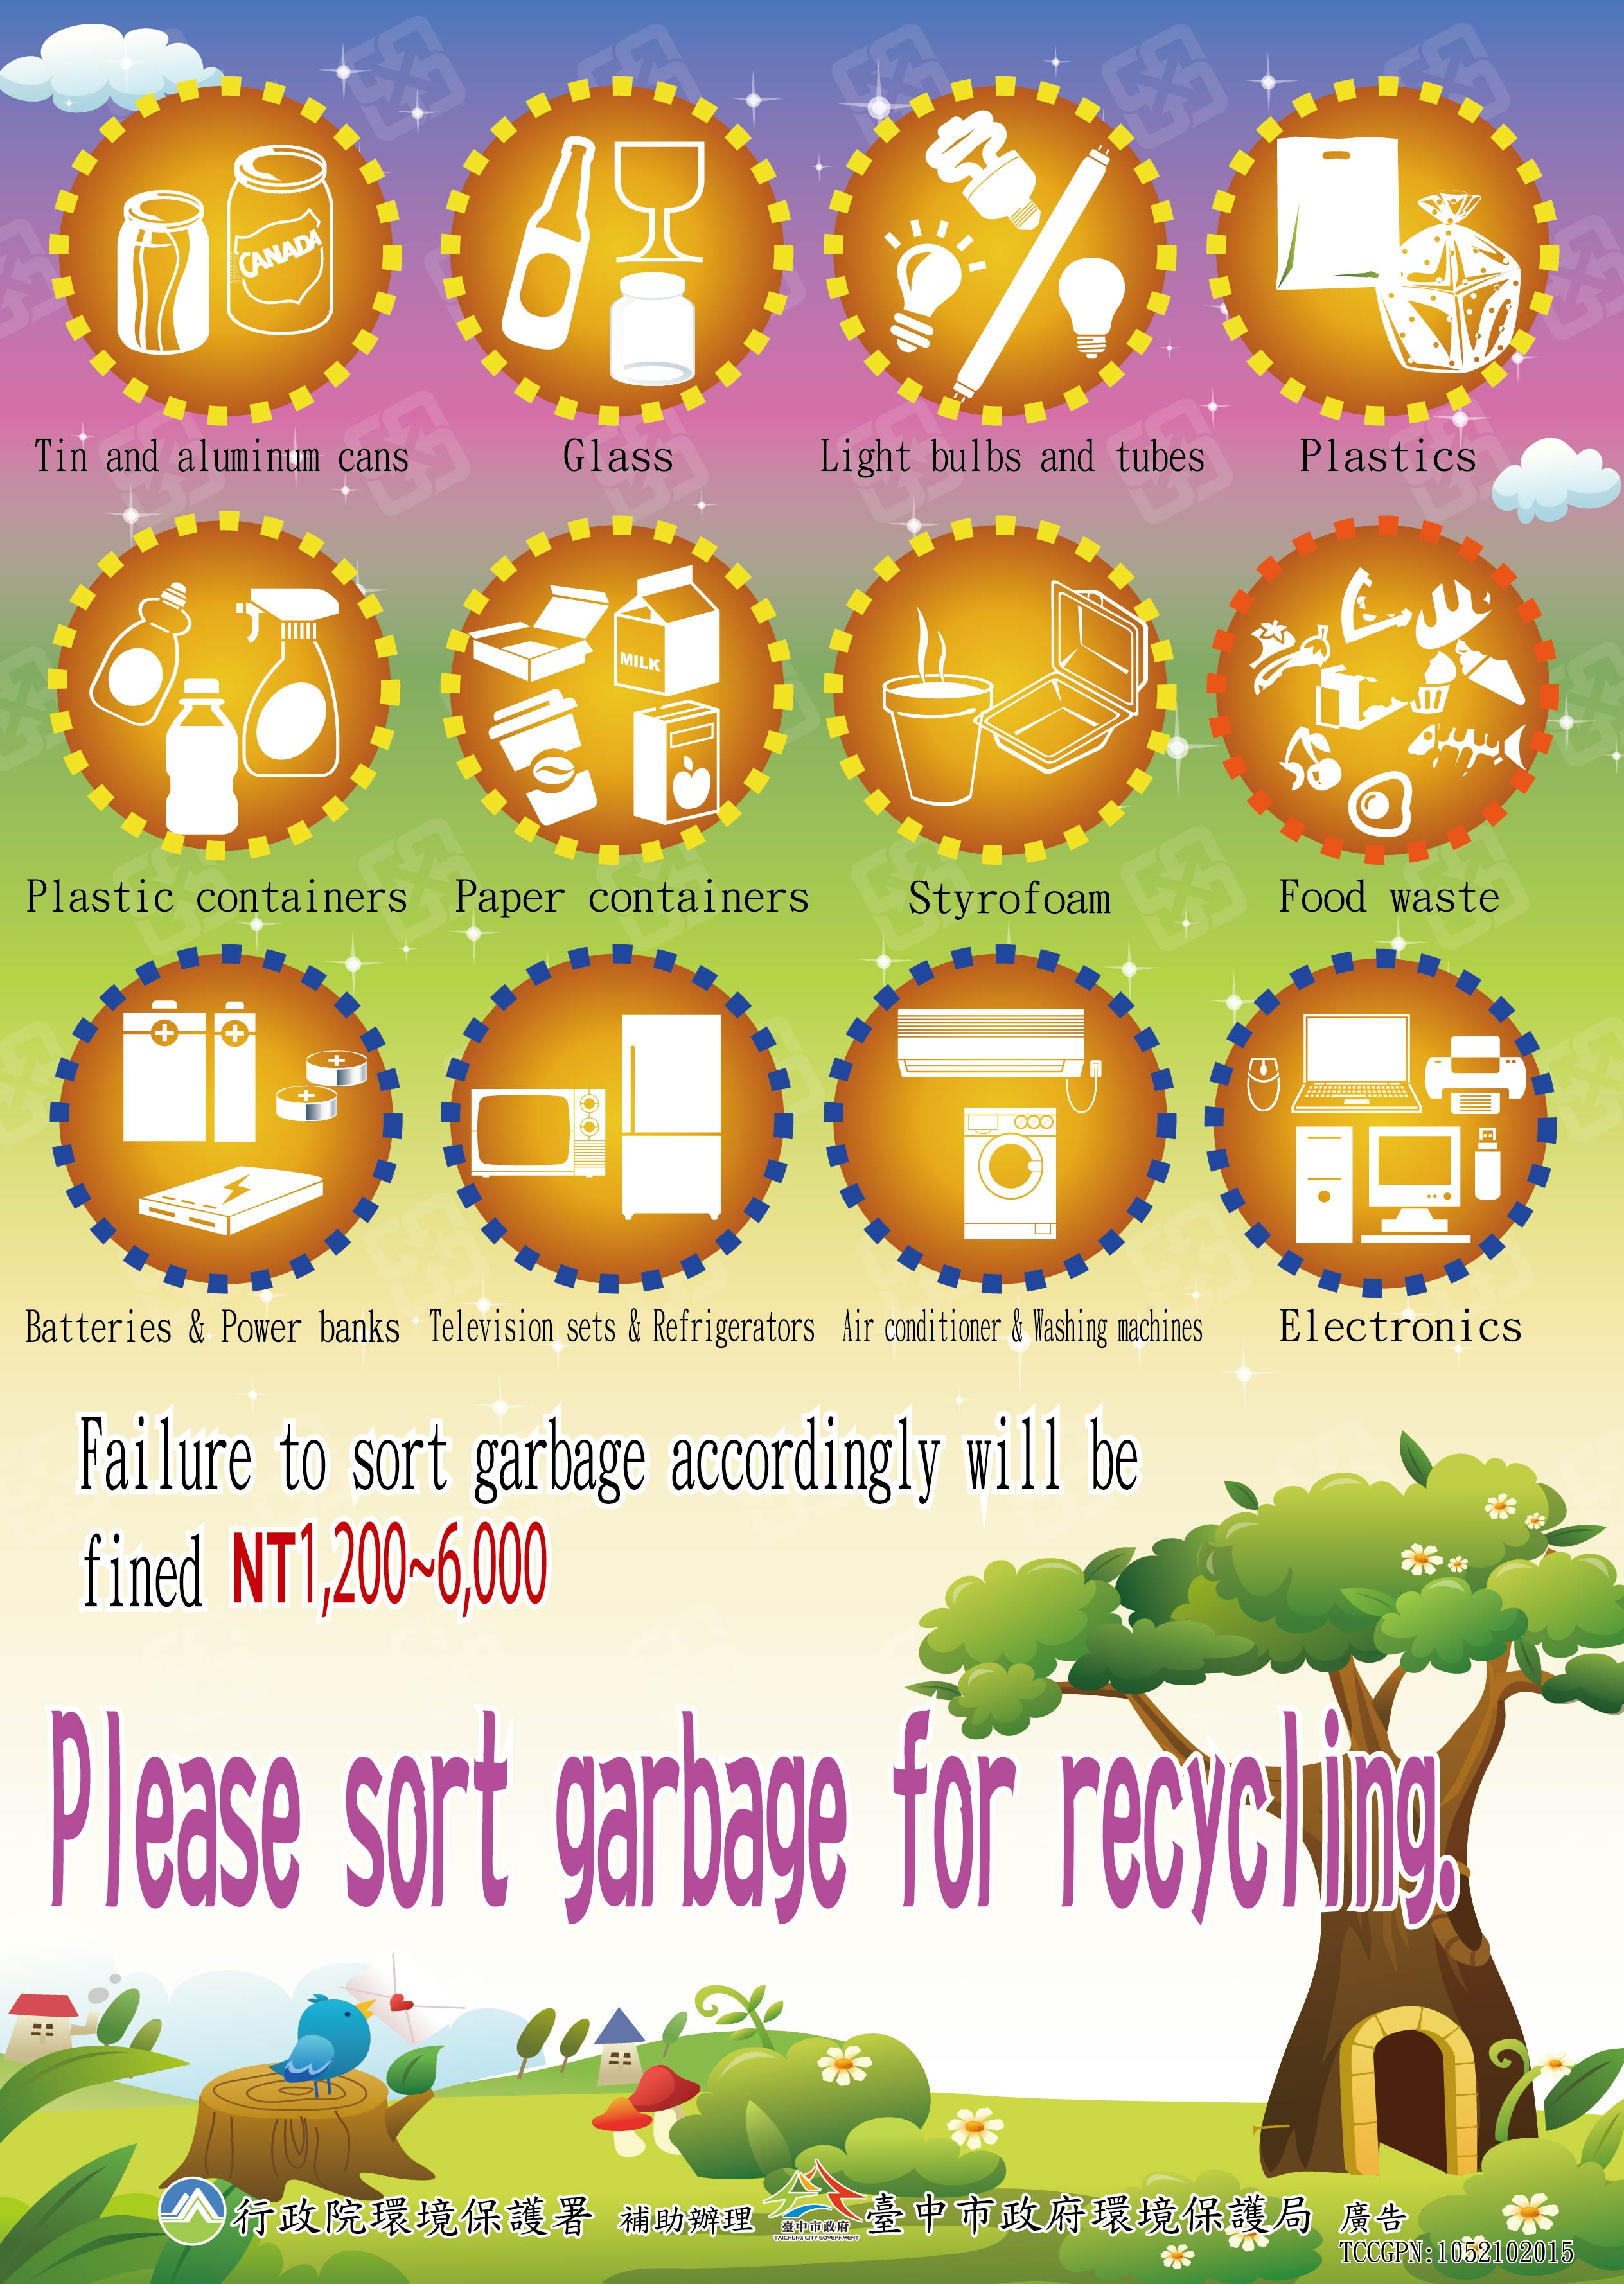 Pleasw sort garbage for recycling.(English)